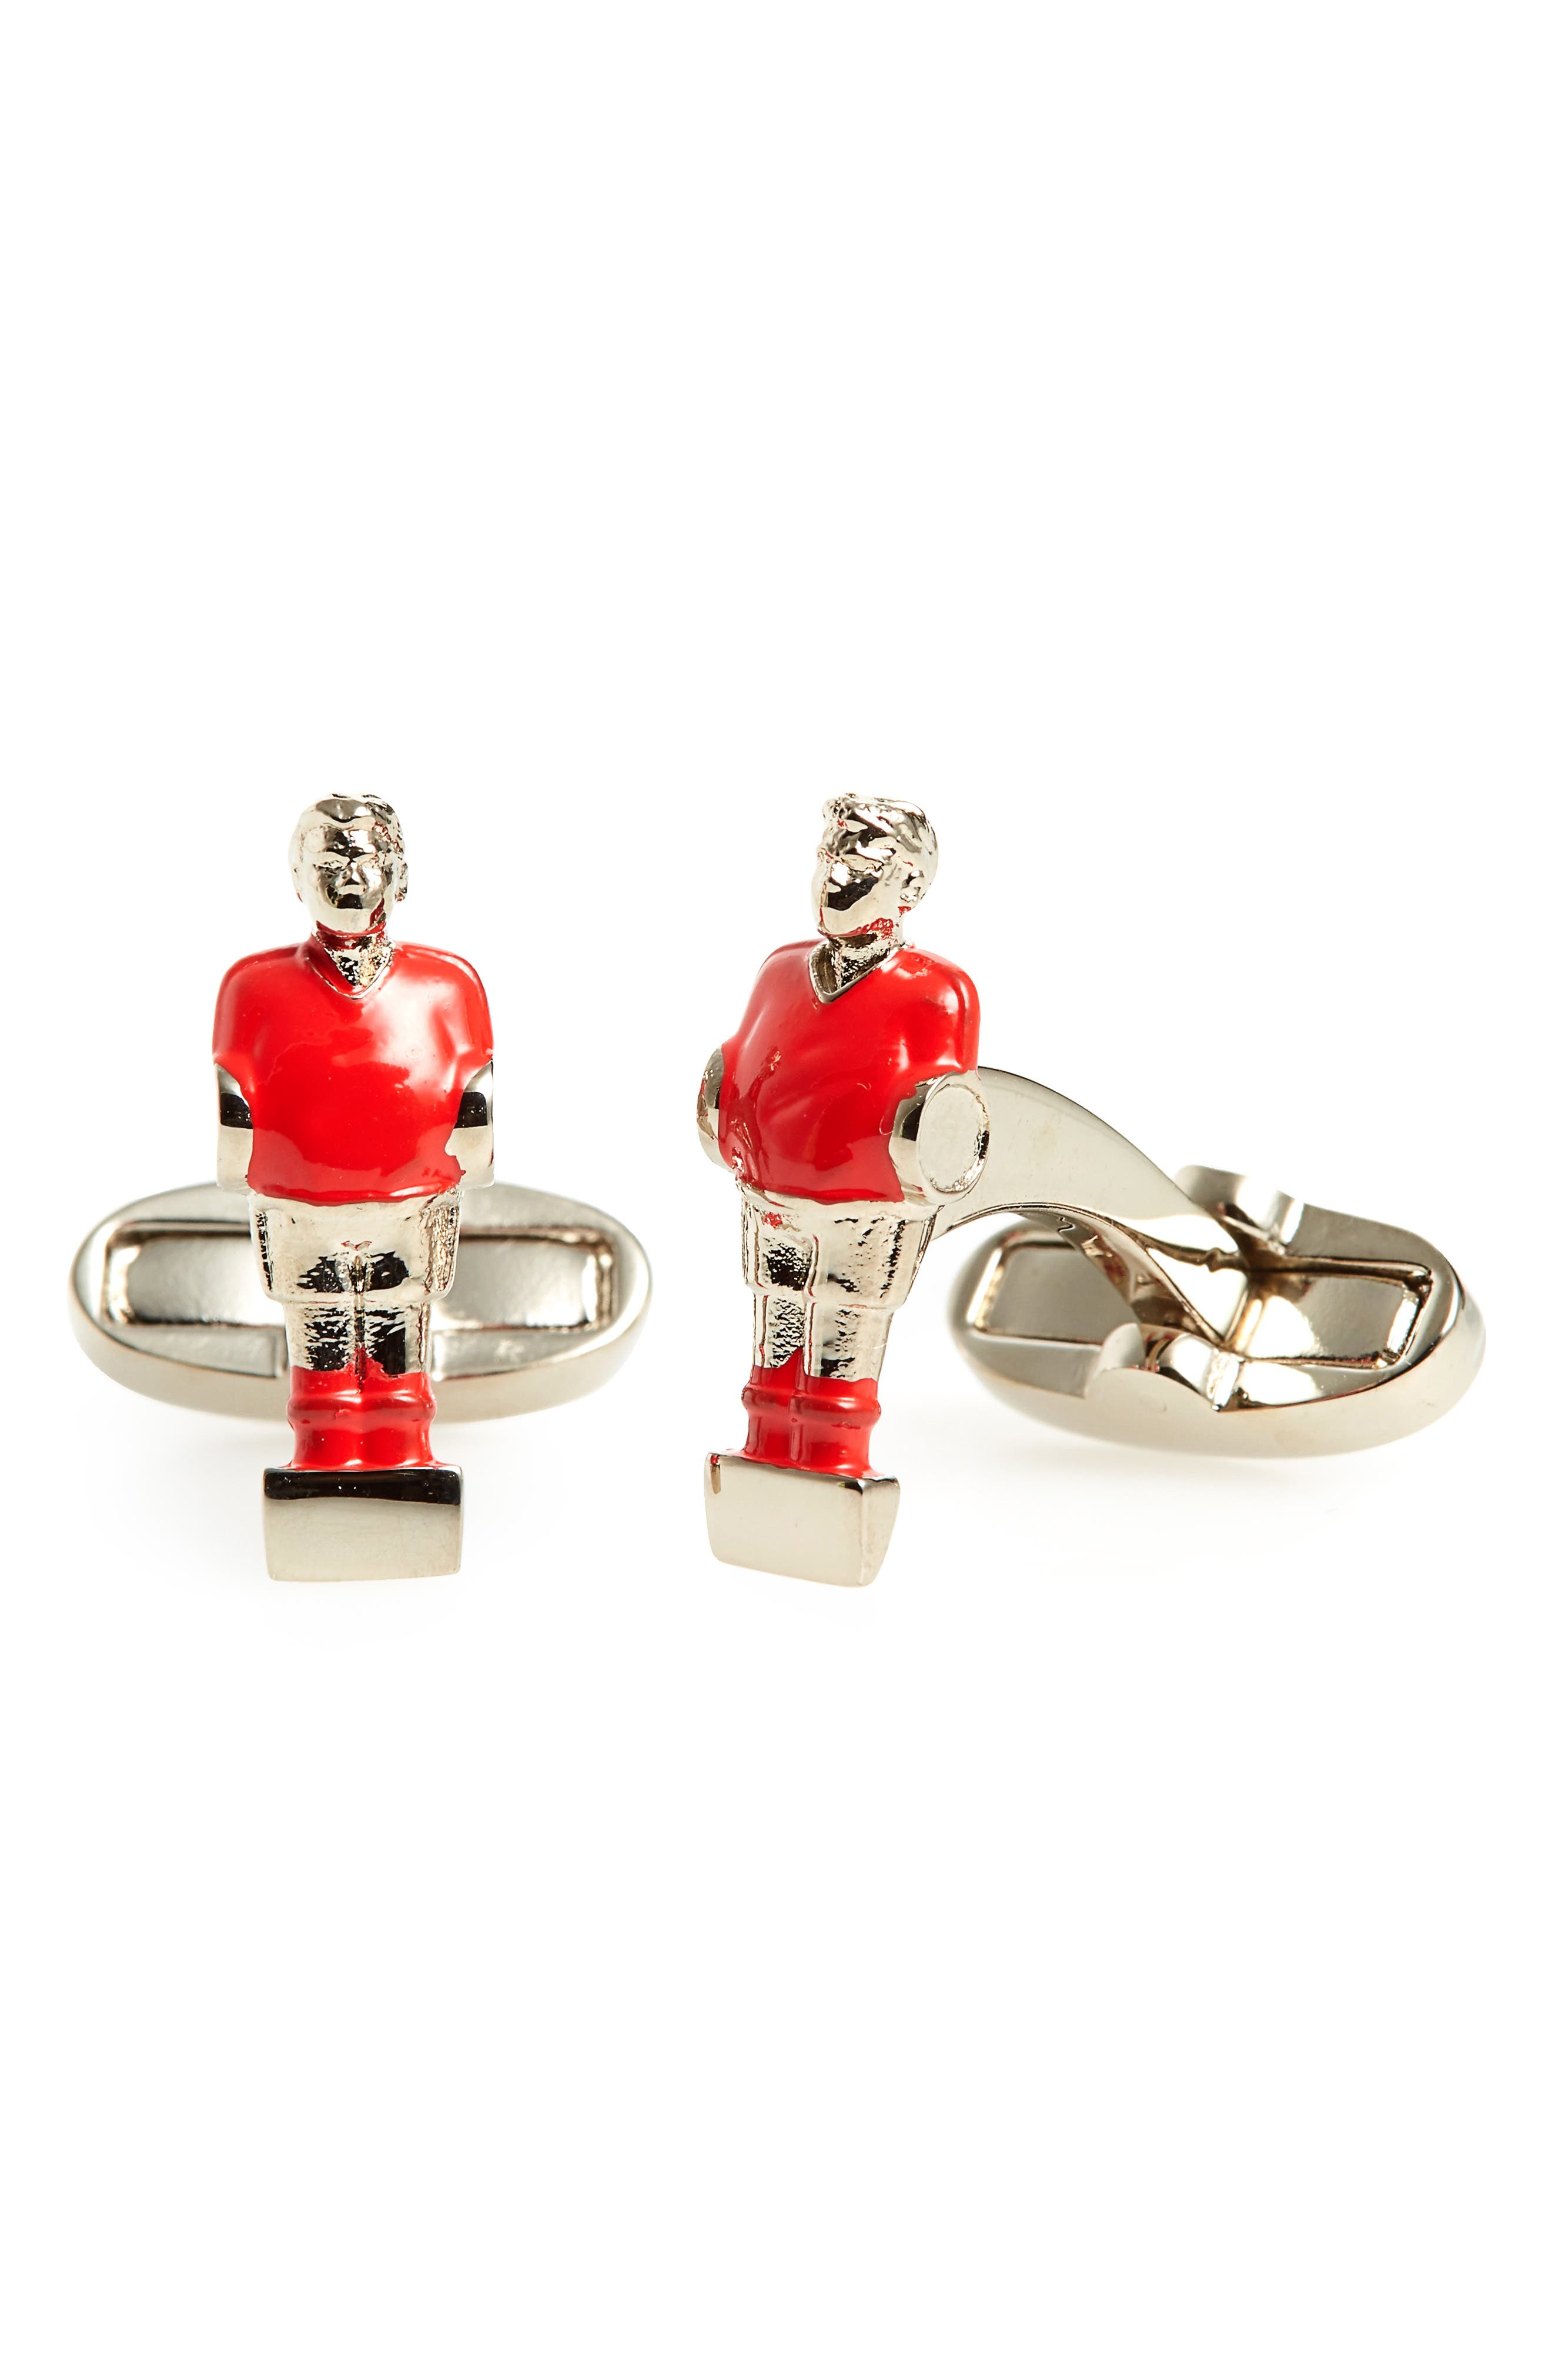 Foosball Cuff Links,                             Main thumbnail 1, color,                             25-RED